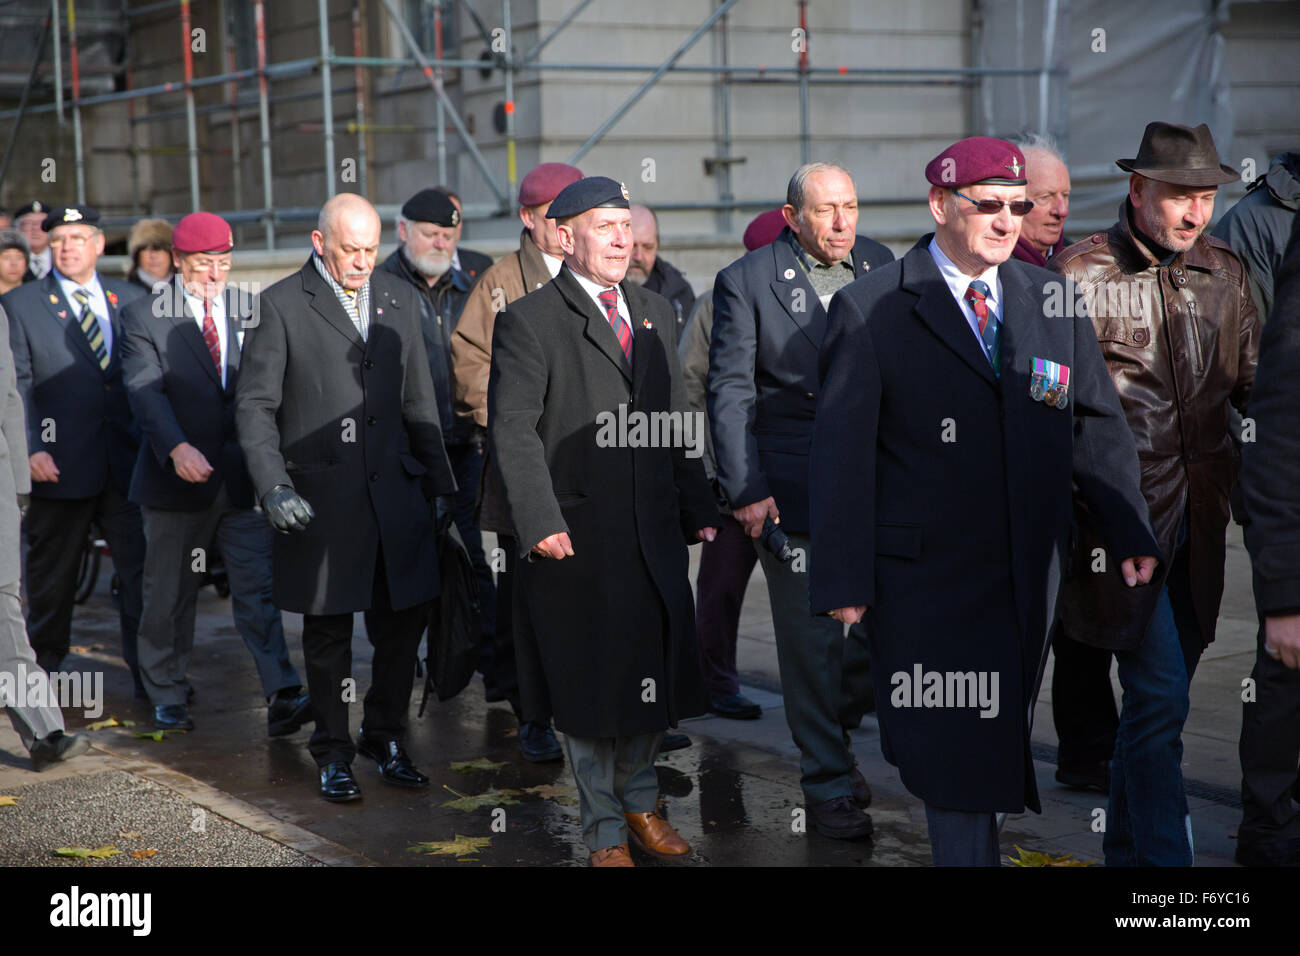 London, UK. 21st Nov, 2015. British military veterans from around the UK assembled opposite Downing Street in support - Stock Image